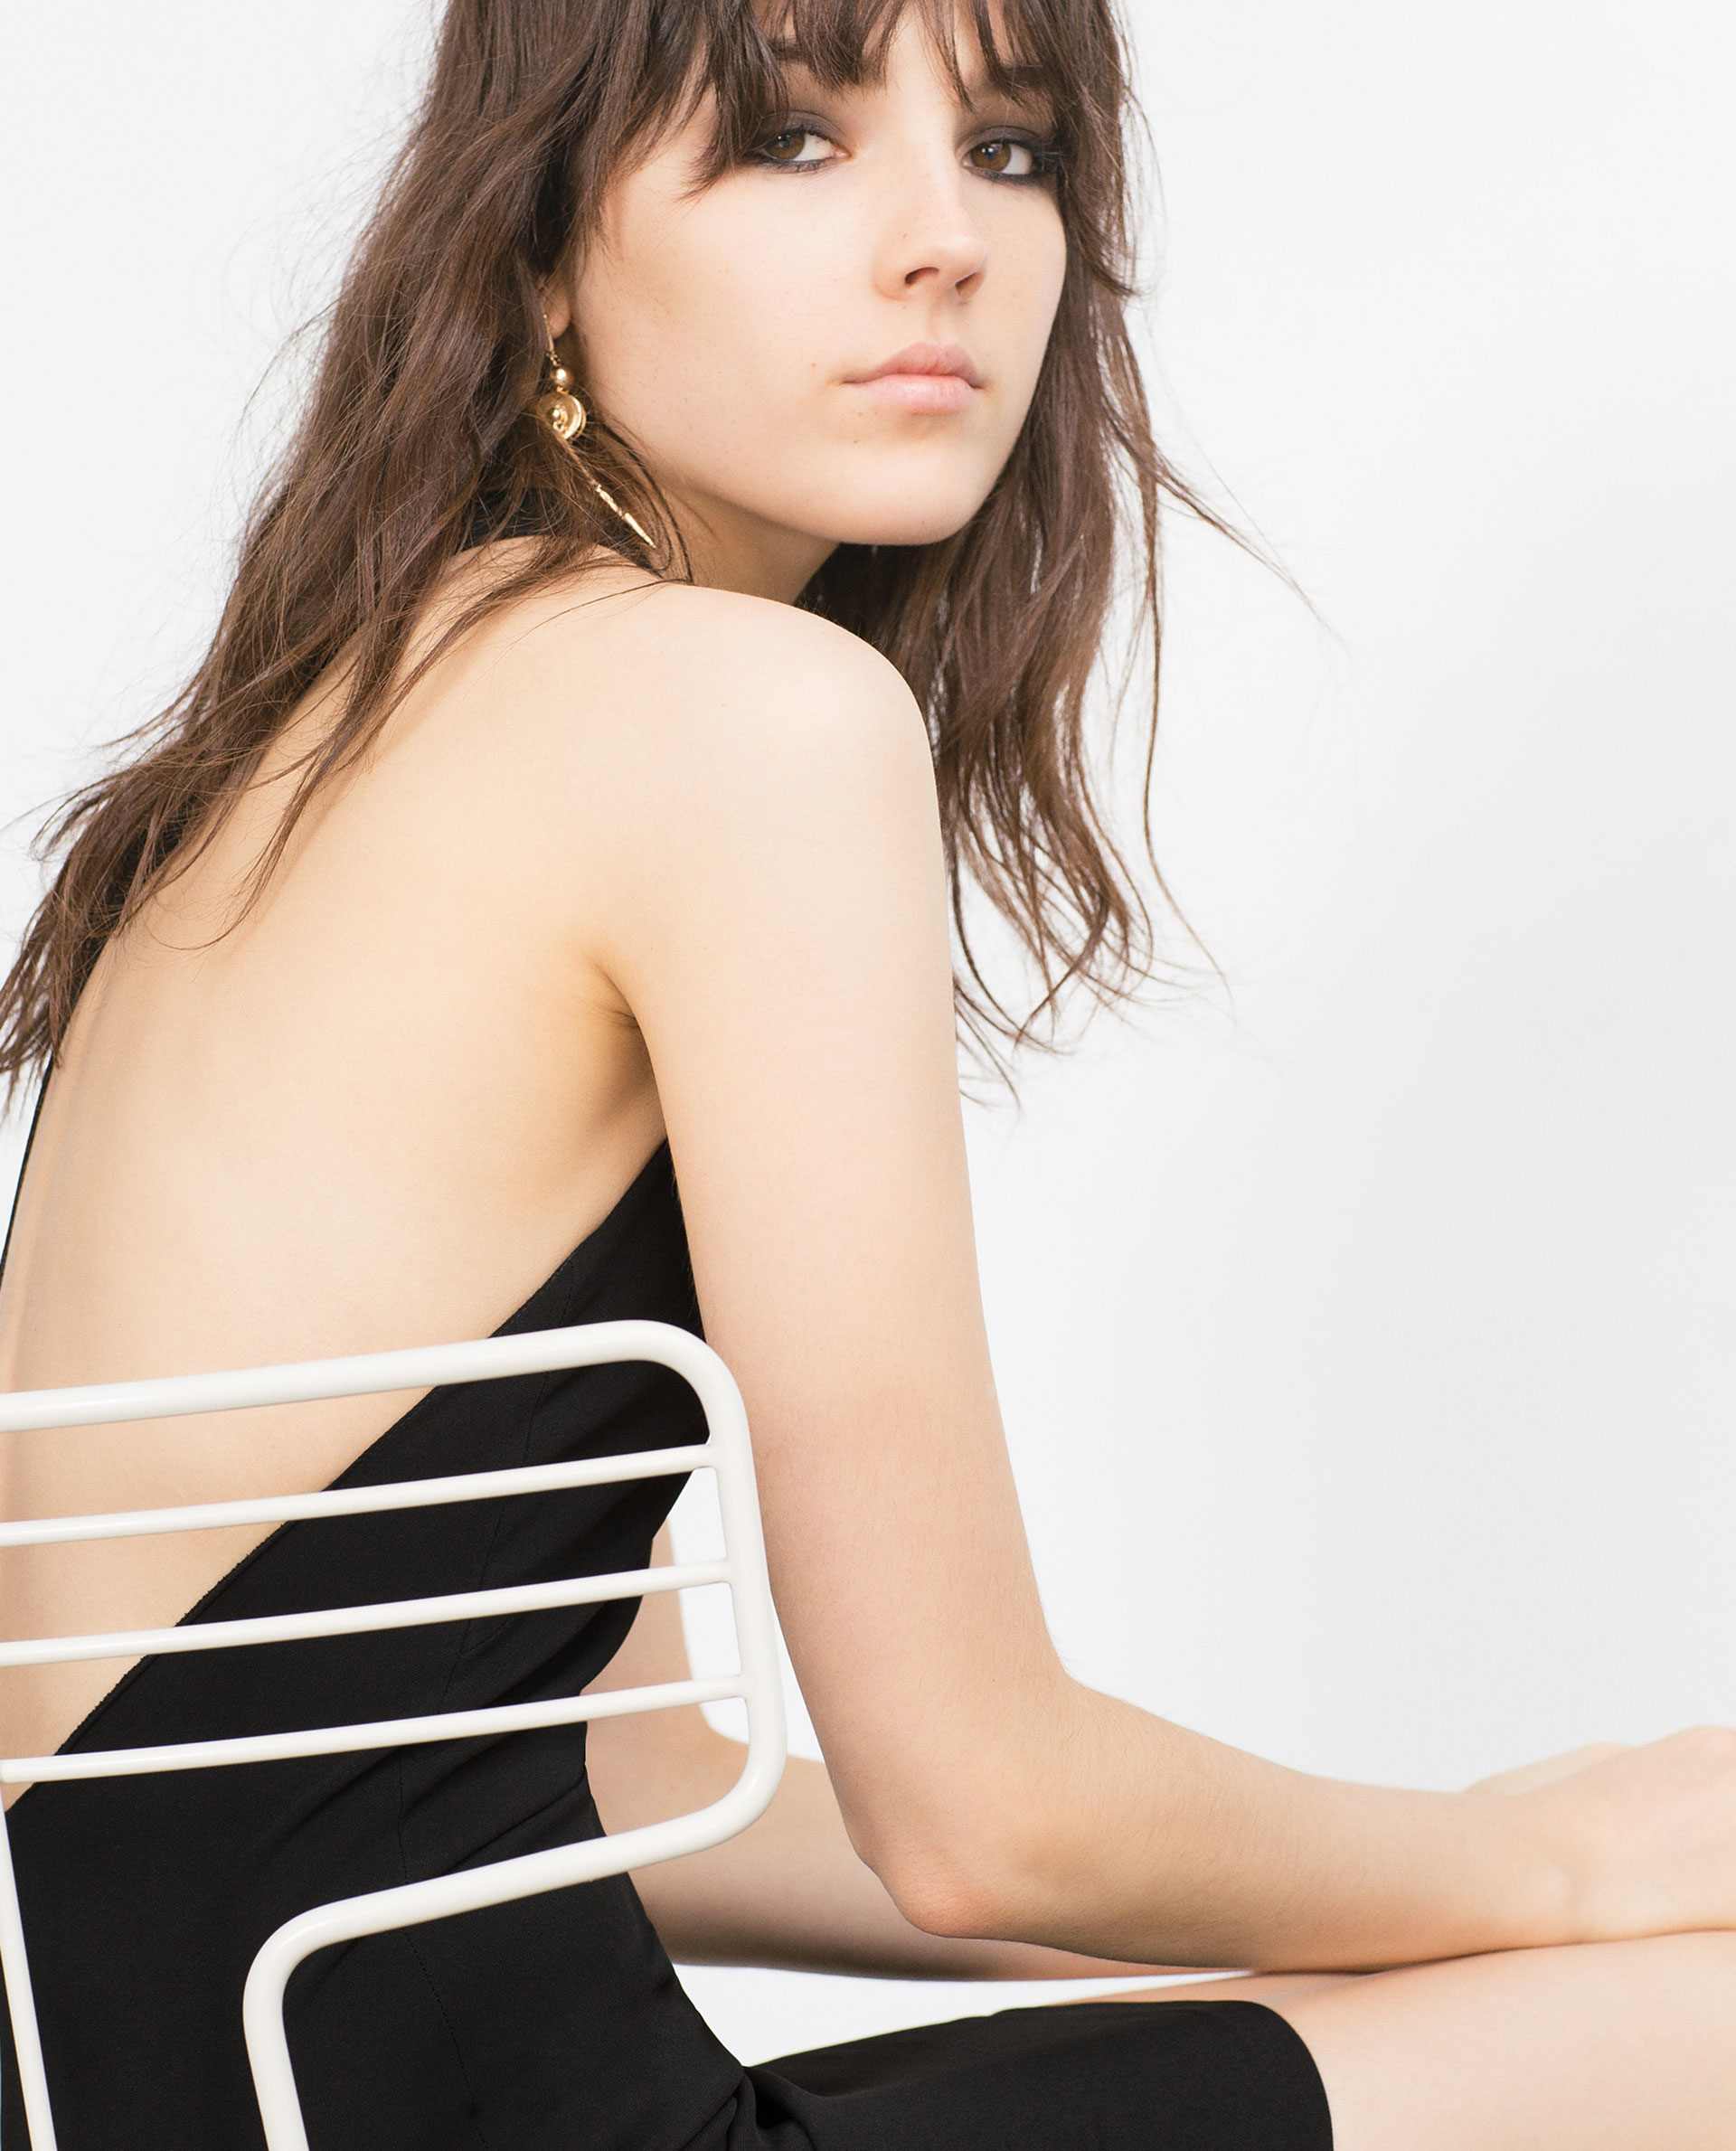 Buy a Strapless Low Back Bra, Halter Low Back Bra, Convertible Low Back Bra or go with a backless bra from Macy's. Macy's Presents: The Edit - A curated mix of fashion and inspiration Check It Out Free Shipping with $49 purchase + Free Store Pickup.